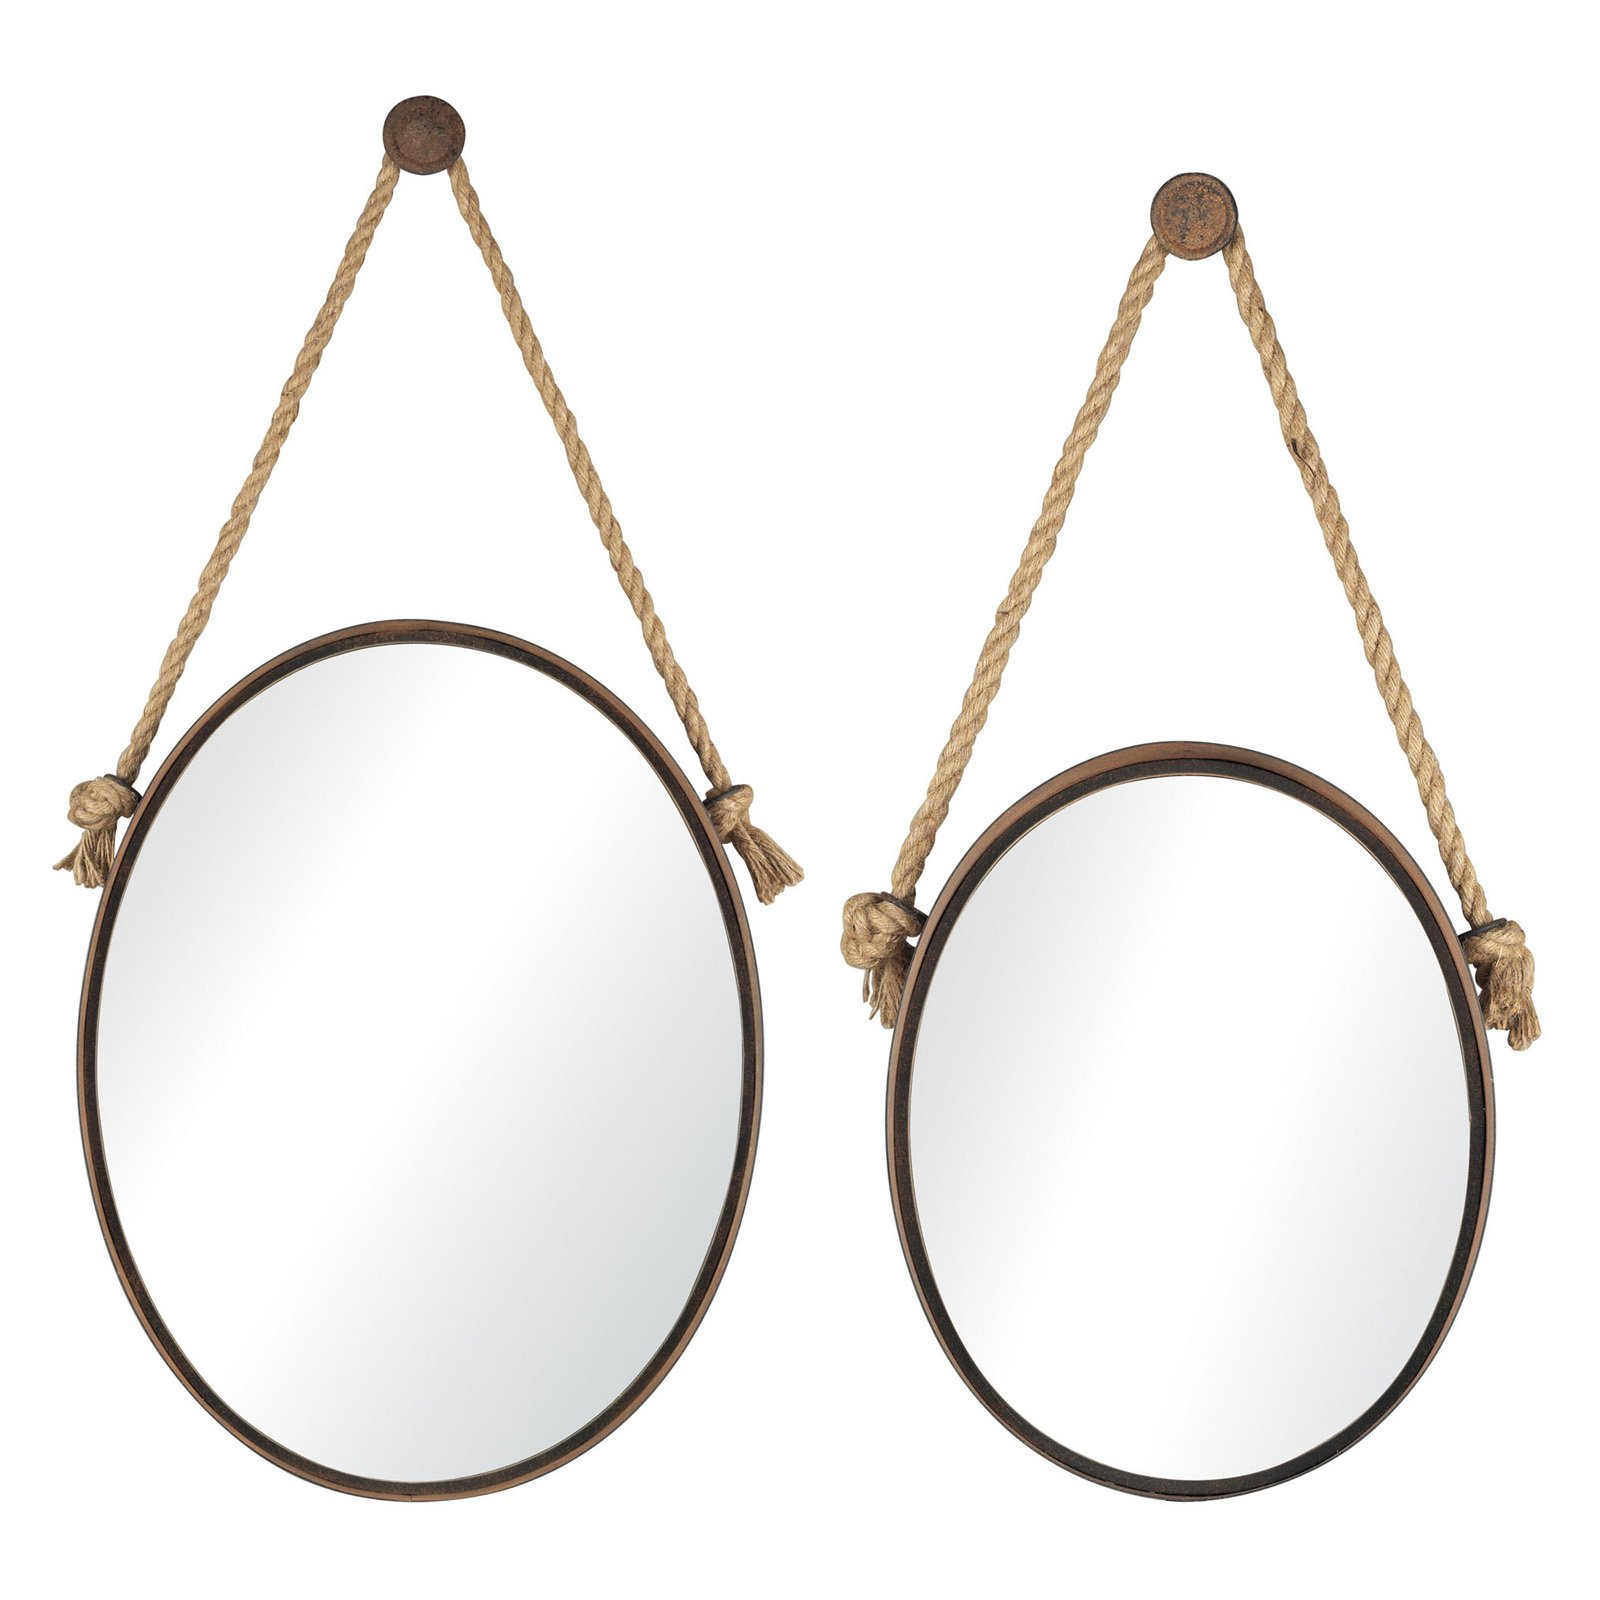 Sterling Oval Wall Mirrors - Set of 2